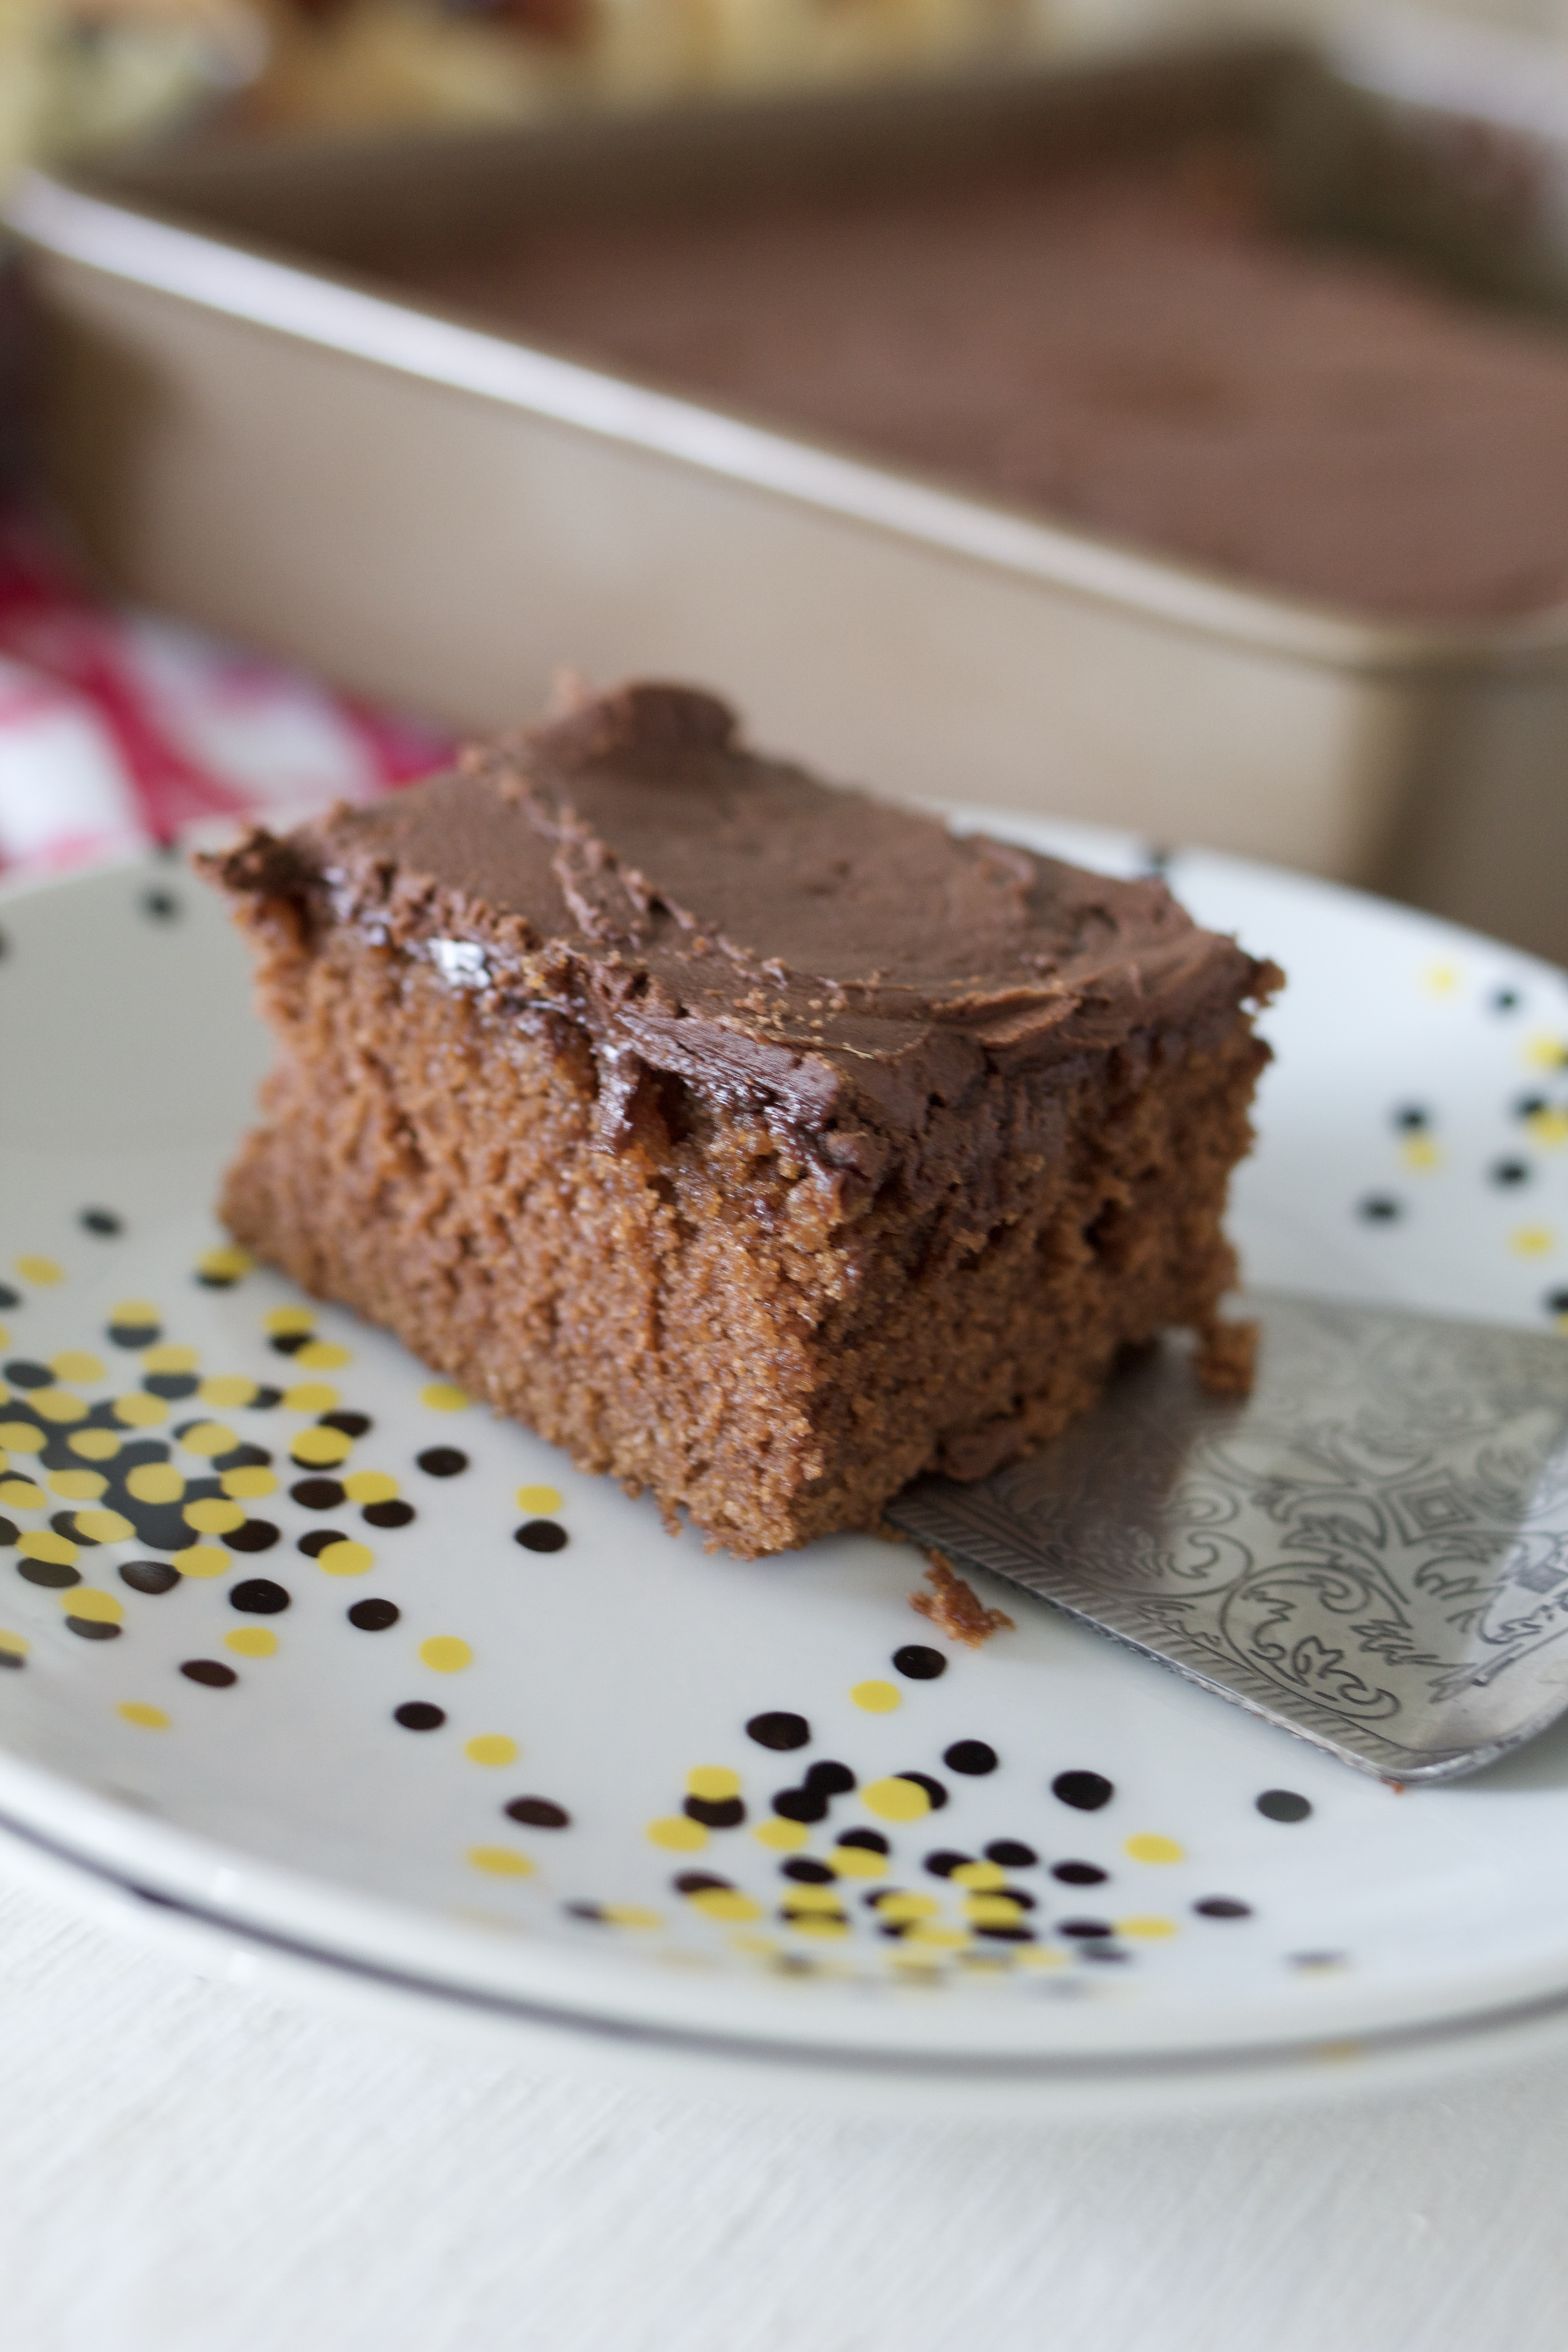 Brownie Picnic Cake with Chocolate Buttercream Frosting